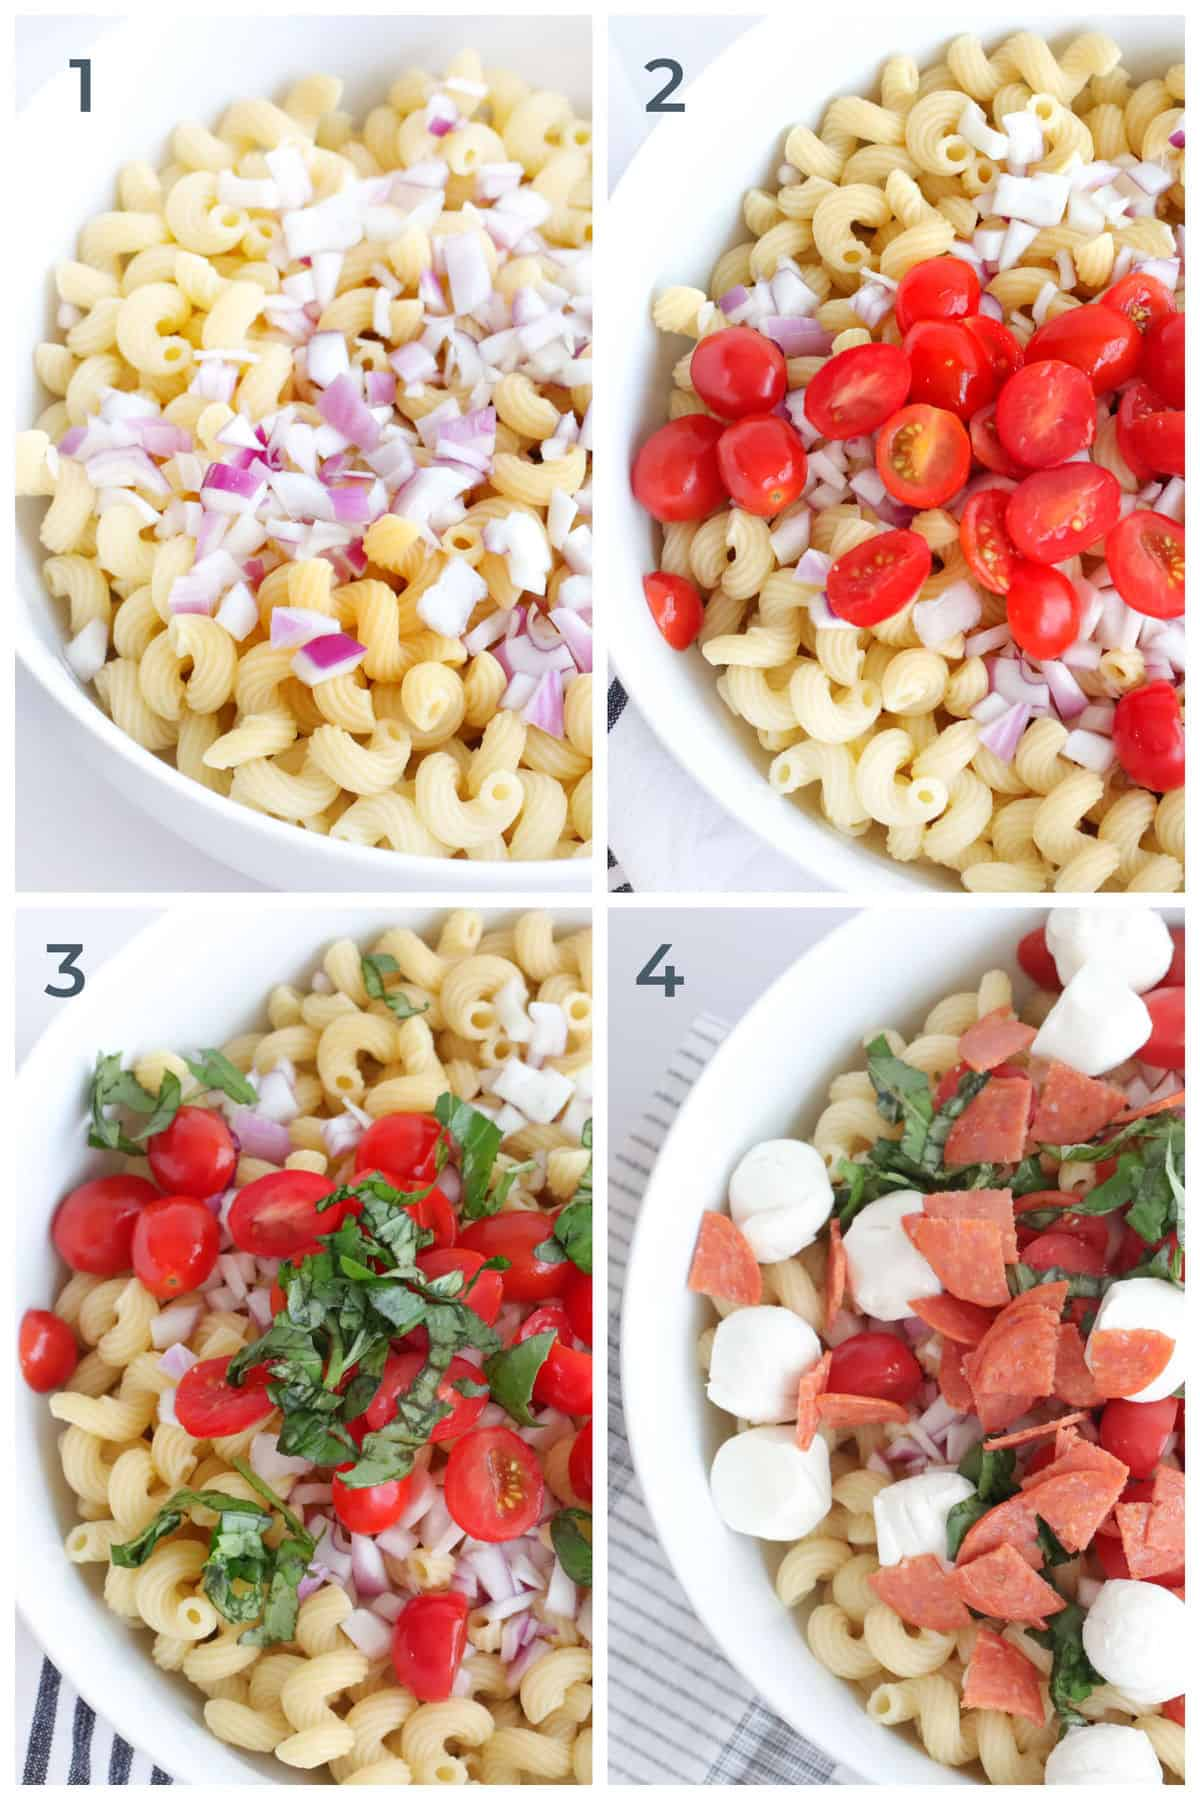 Step by step instructions for making Pepperoni Caprese Salad - pasta, pepperoni, basil, mozzarella, red onion